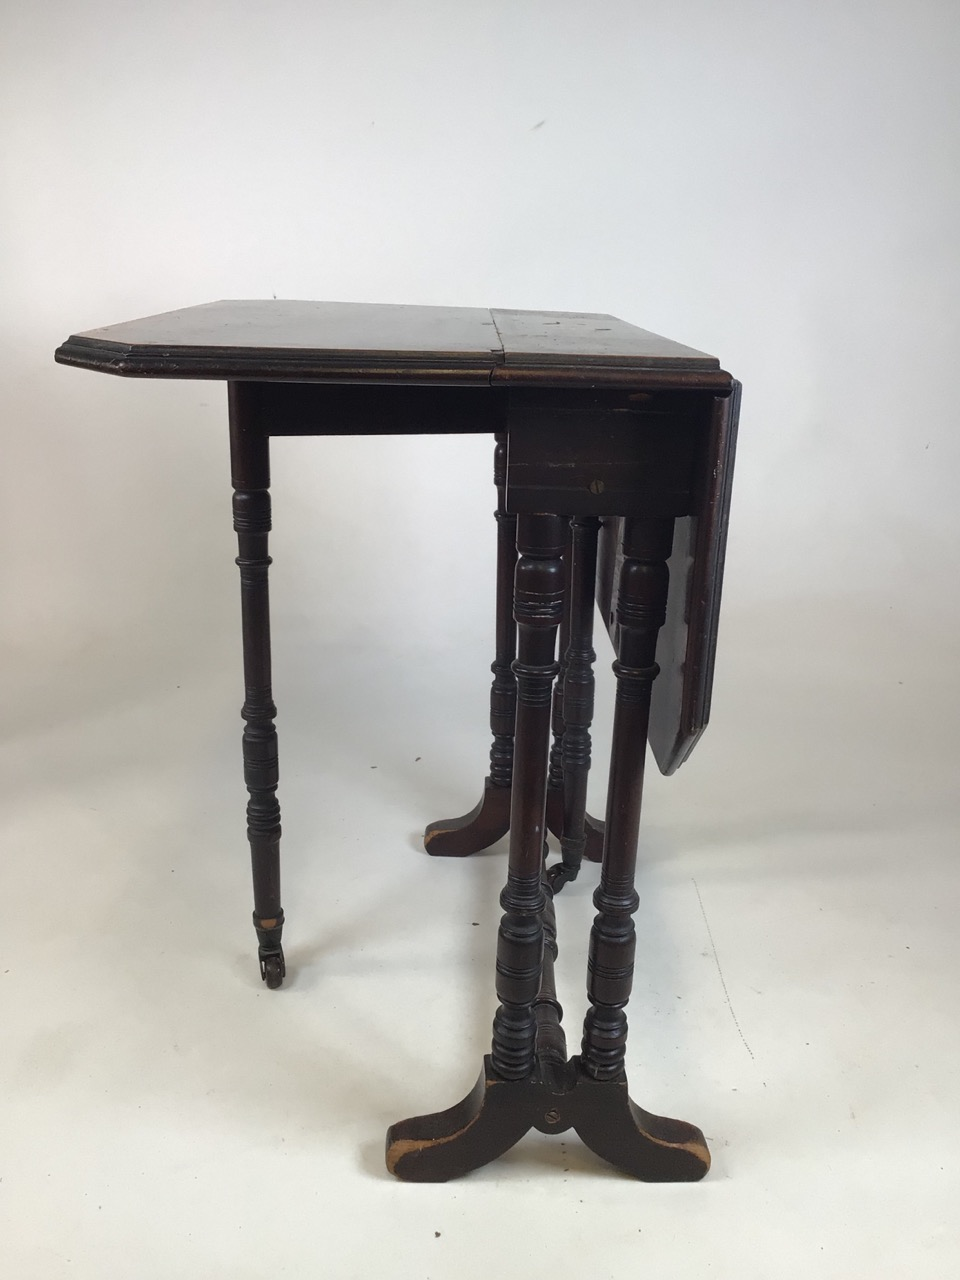 A small Edwardian mahogany inlaid Sutherland table with turned legs and stretcher with ceramic - Image 3 of 9